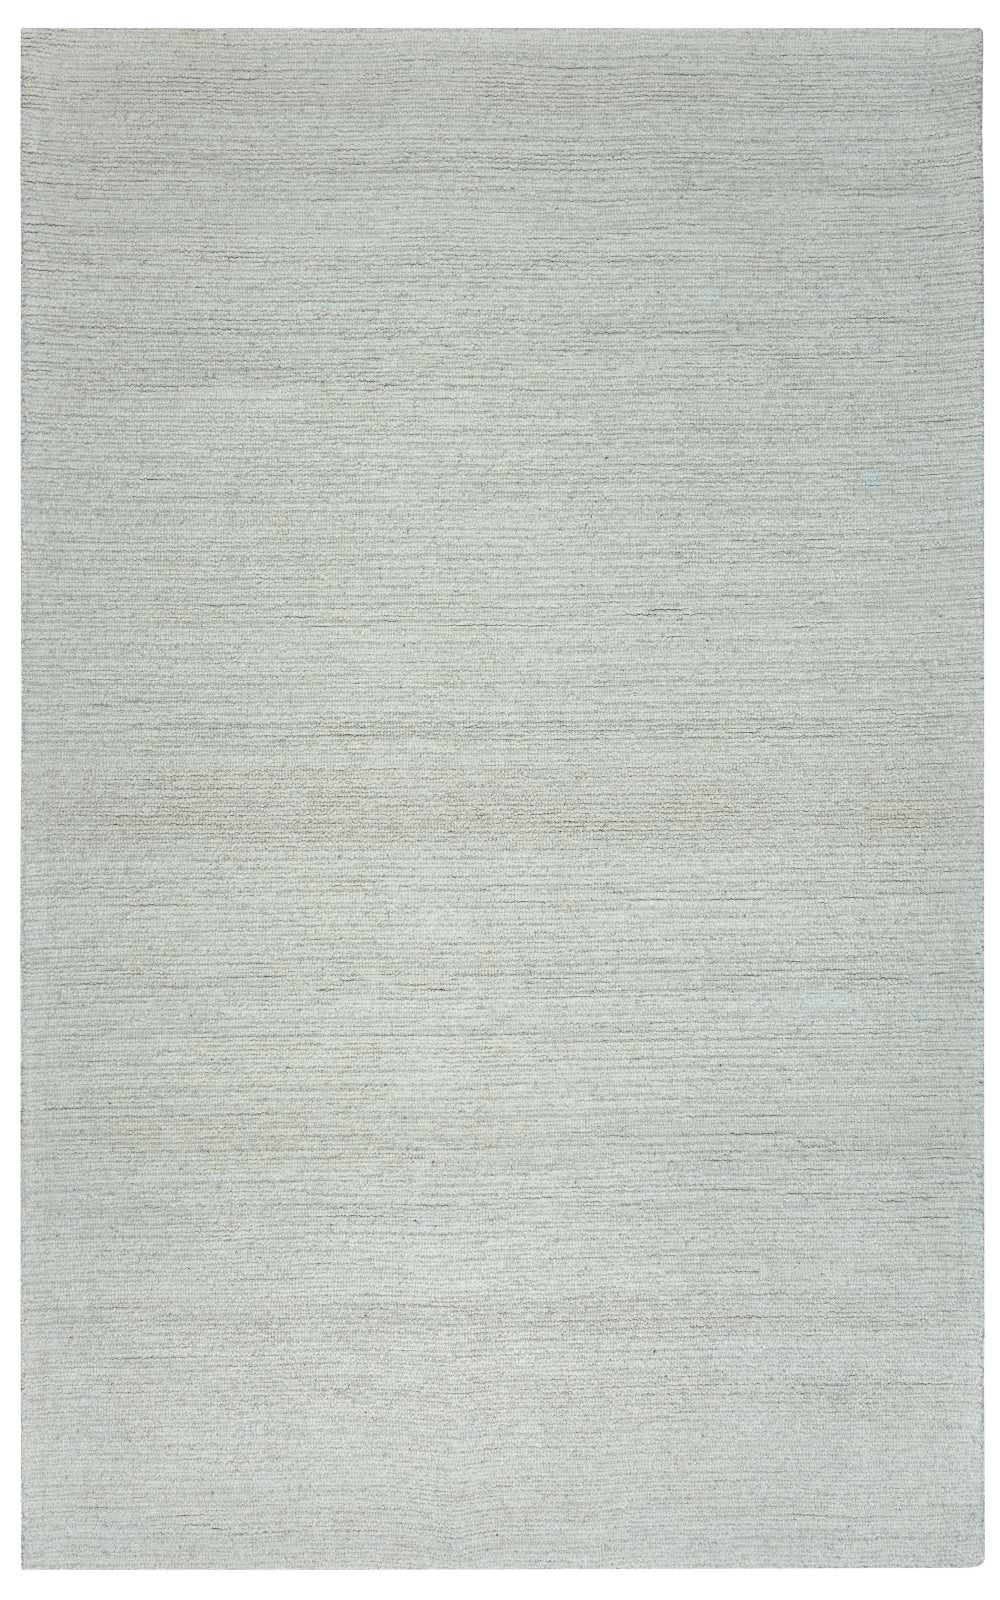 Rizzy Country CT1357 Off White Area Rug main image